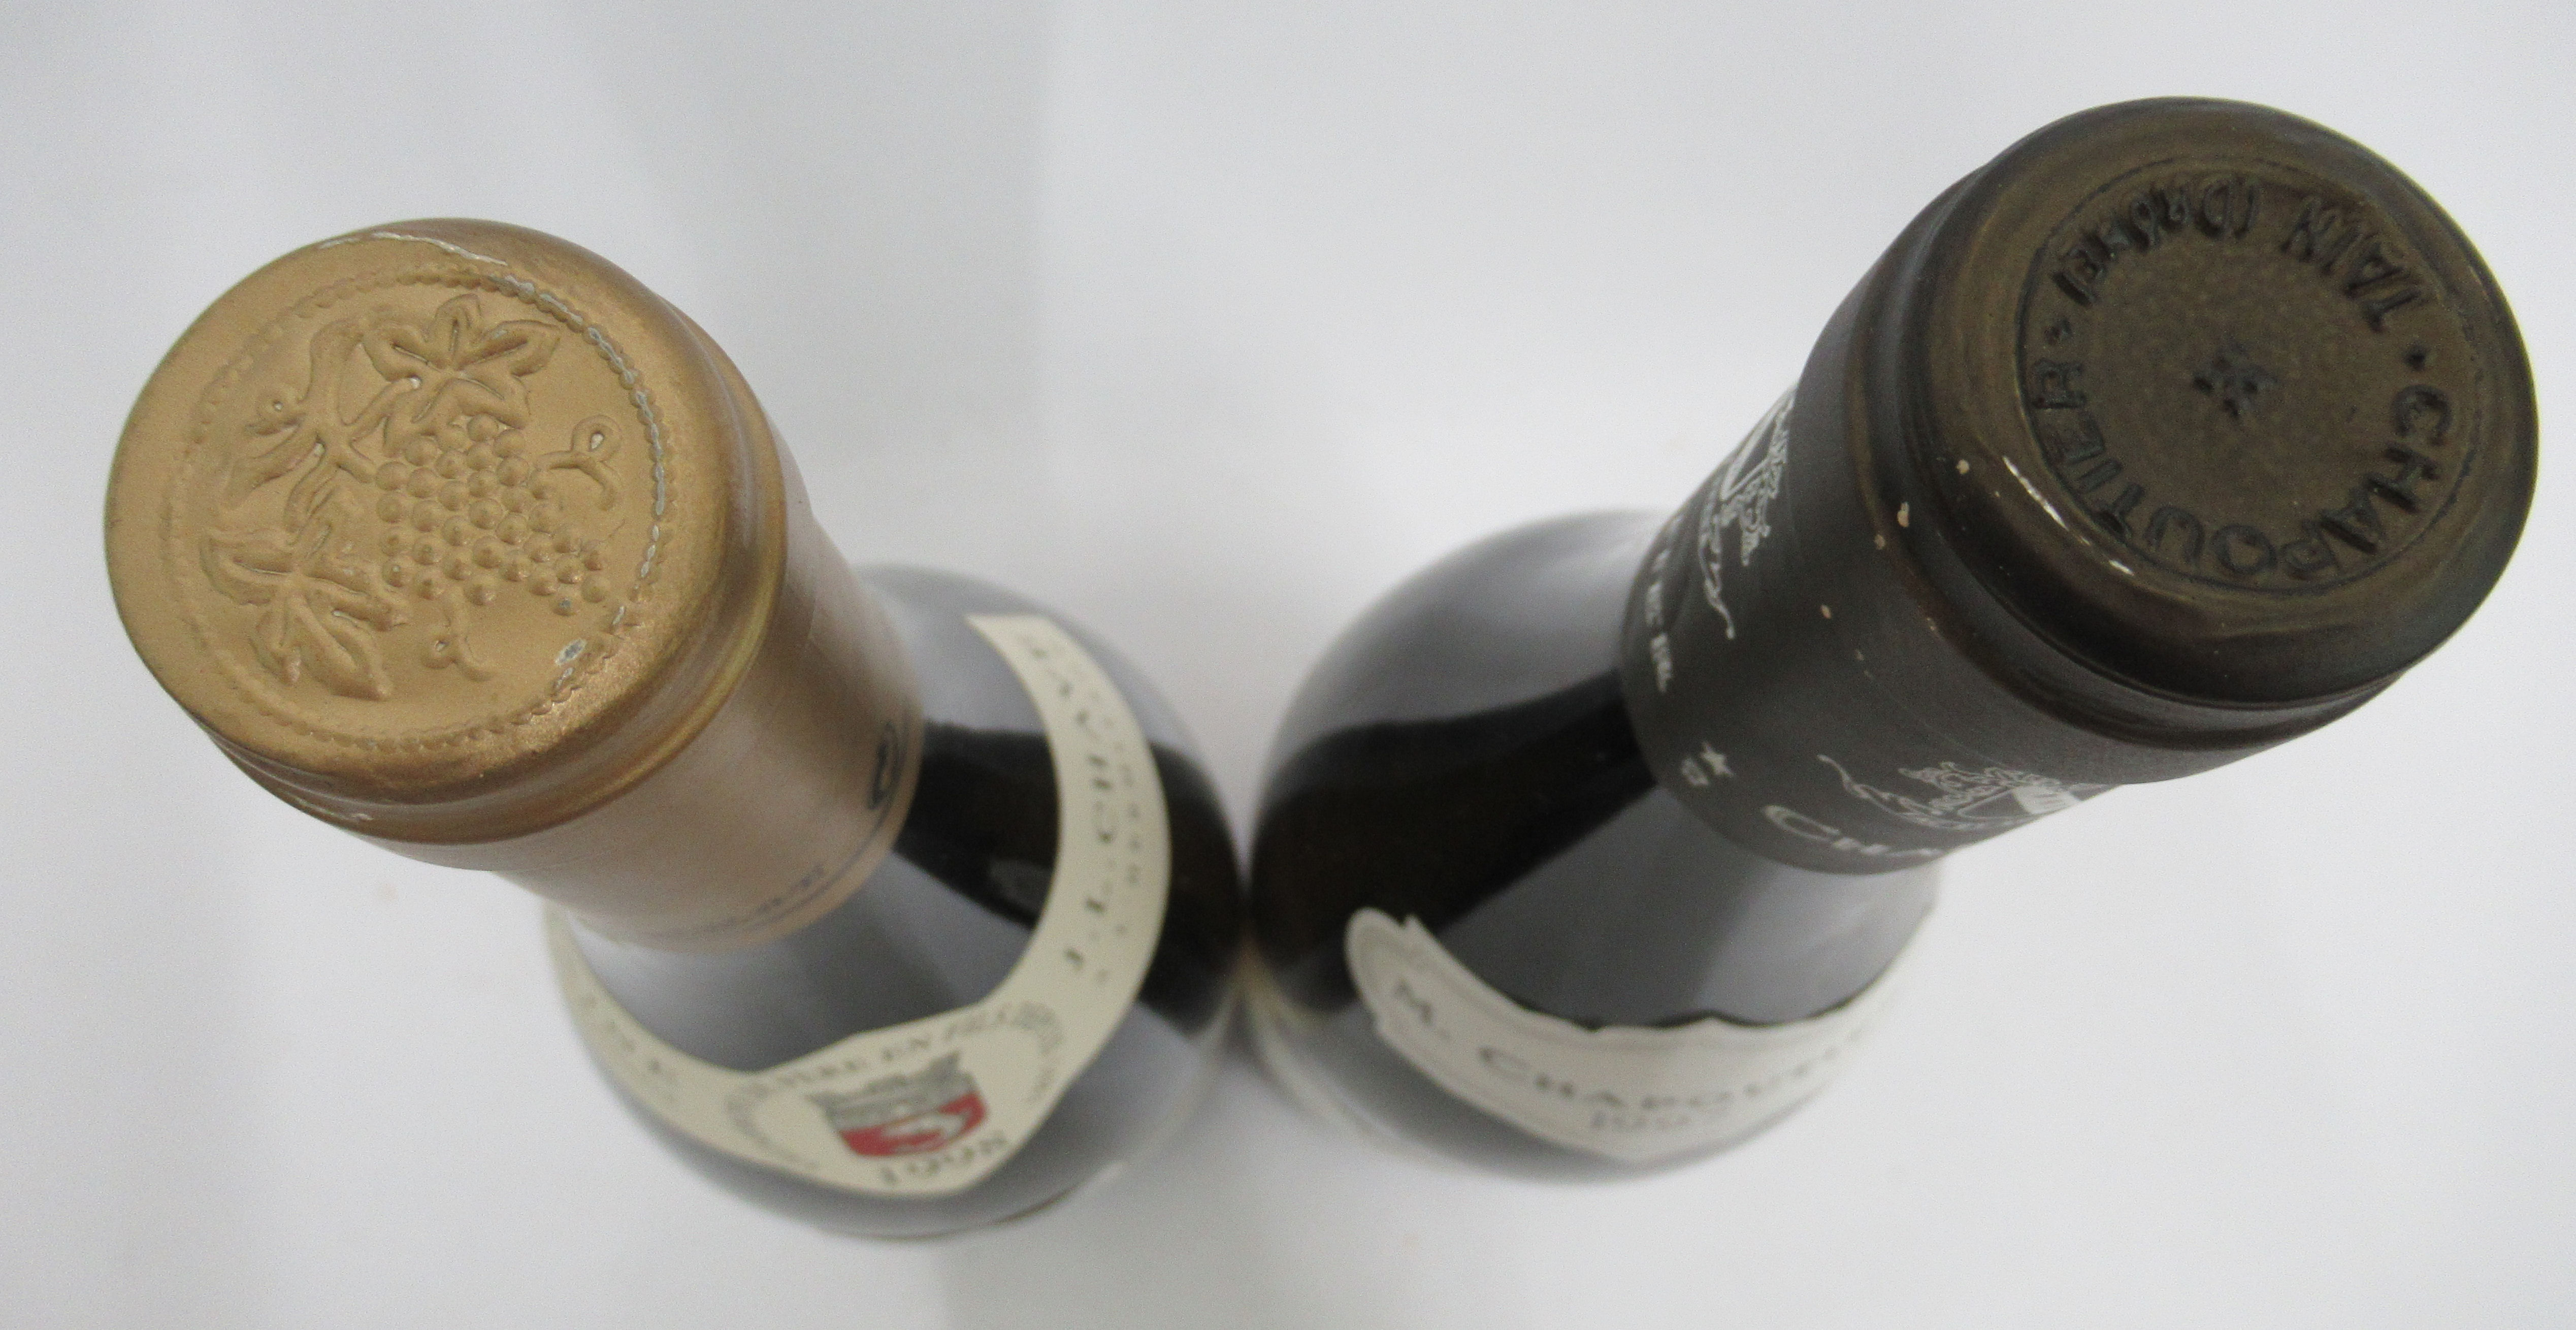 Wine, viz. a 1998 Hermitage Domaine Jean-Louis Chave; a 2000 Hermitage; and a 1997 Chante-Alouette - Image 3 of 4